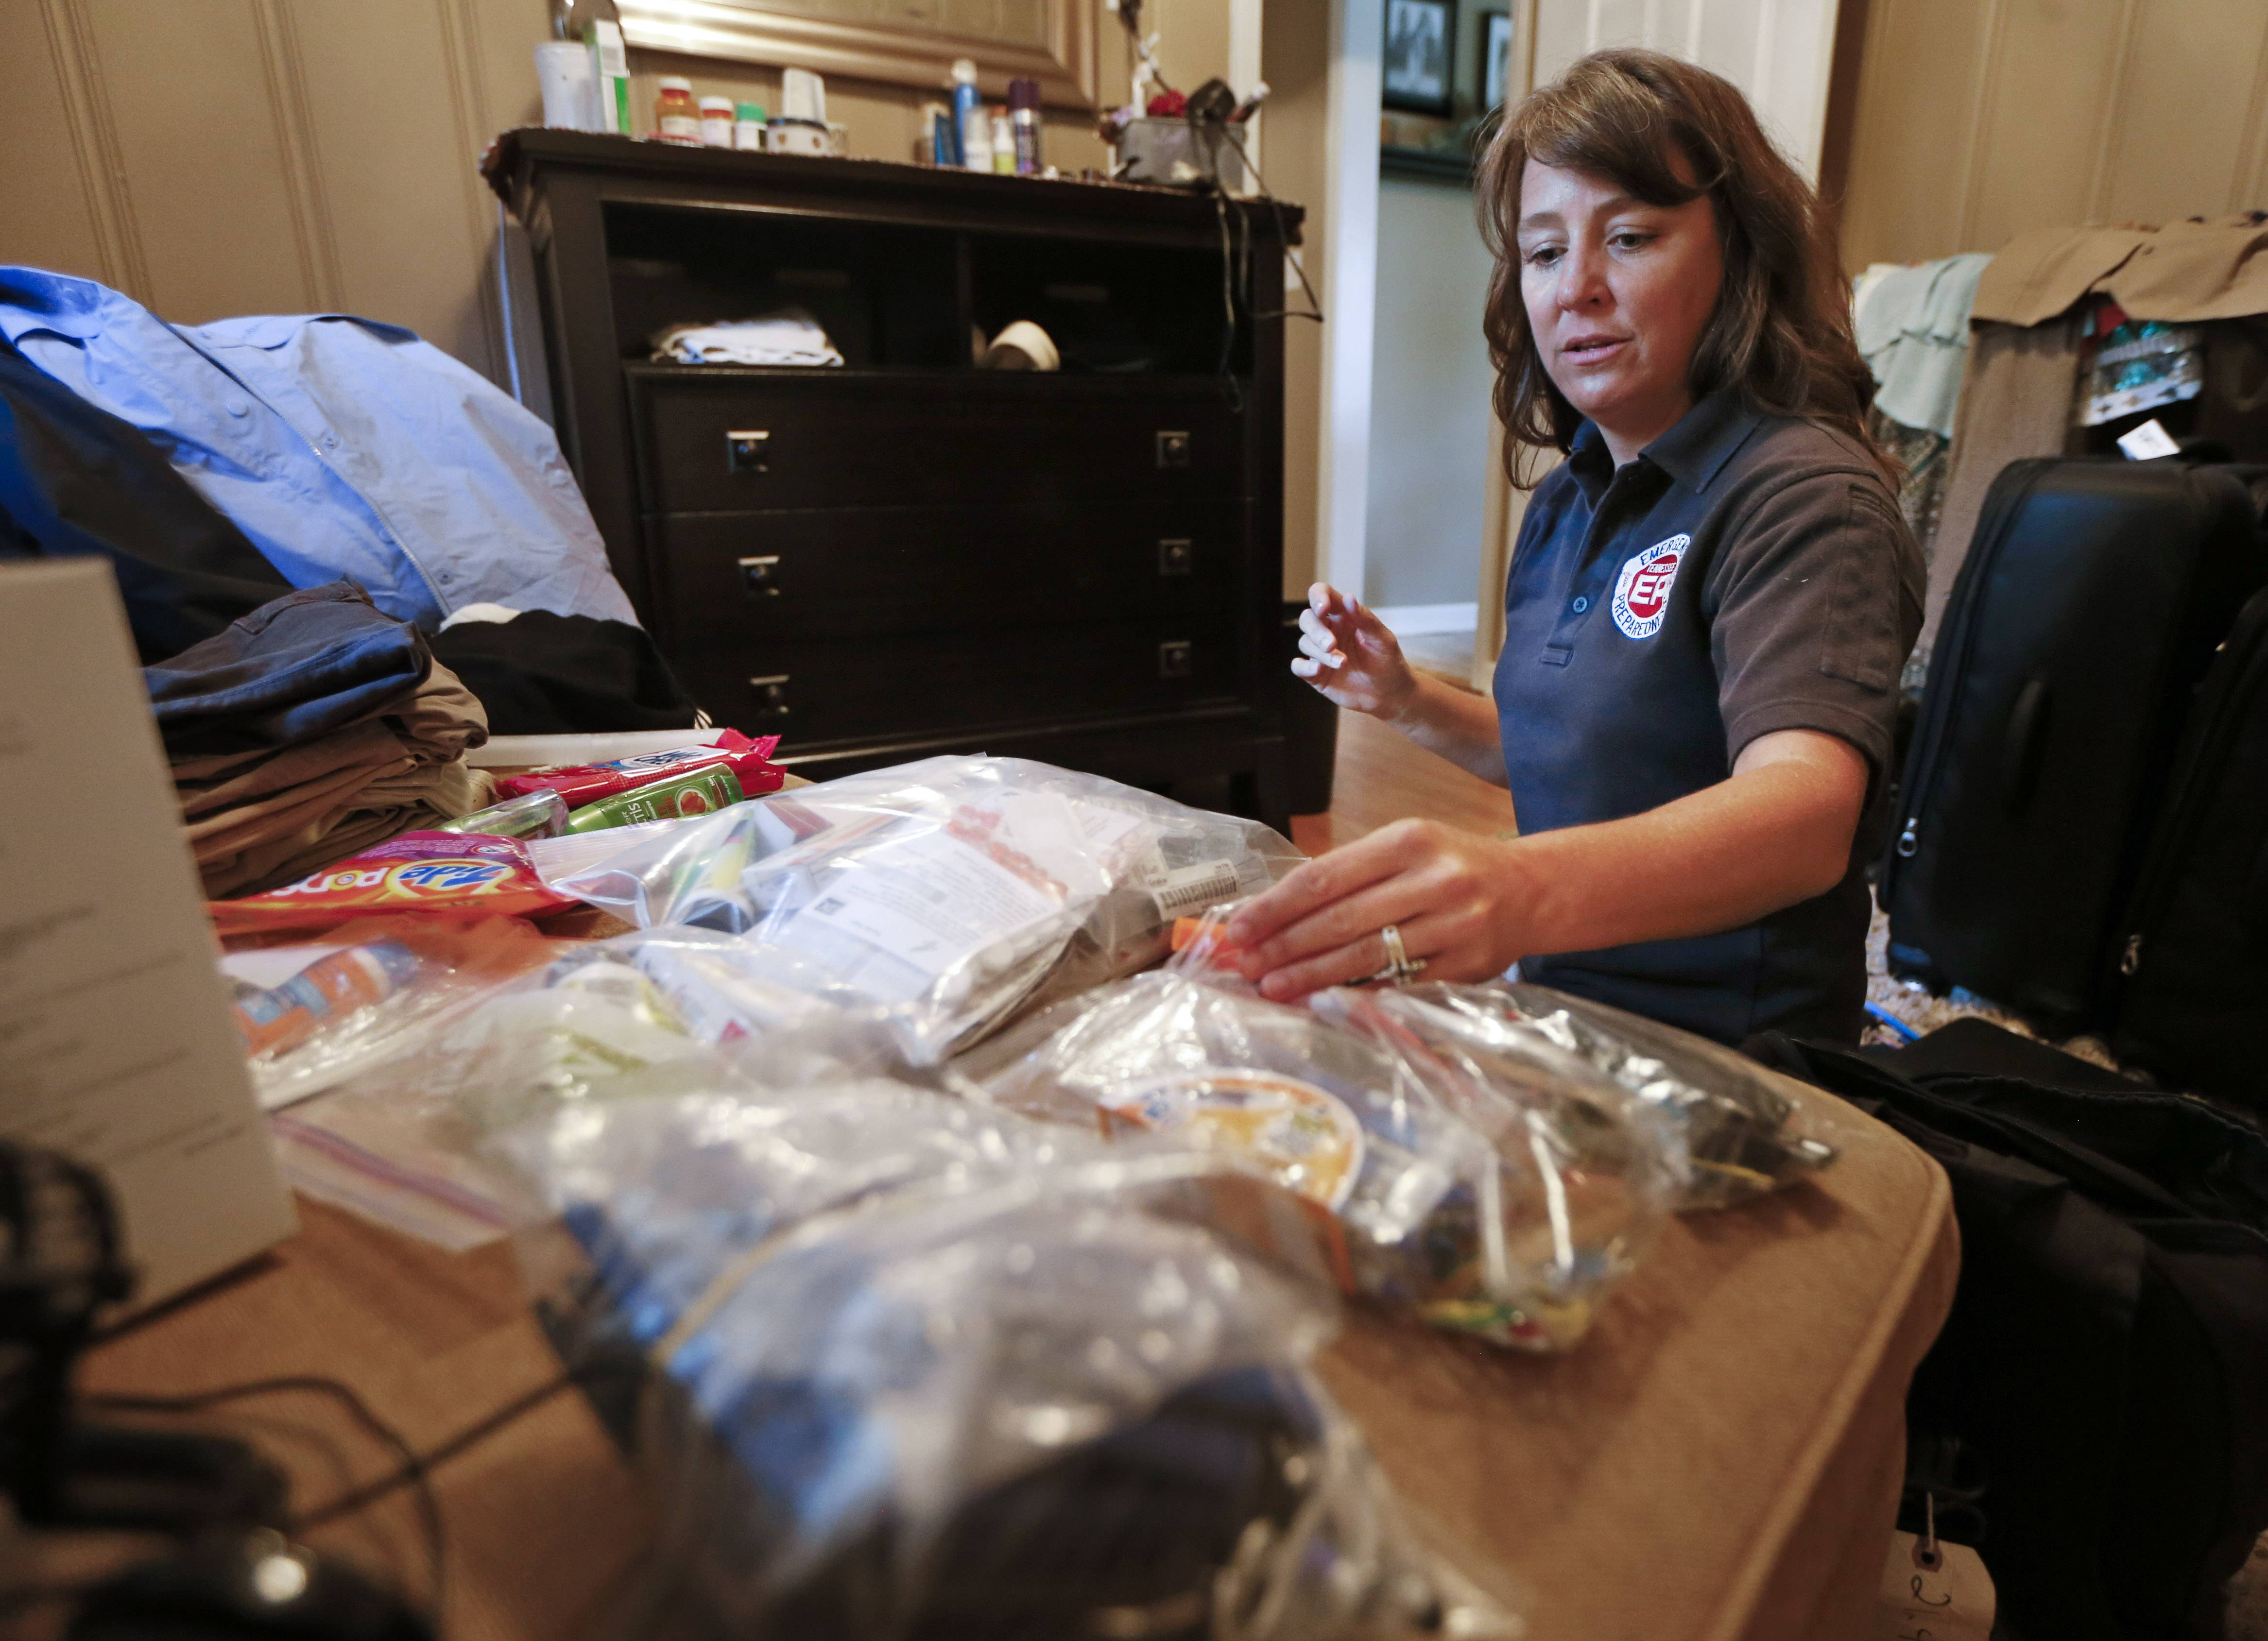 Rendi Murphree, an epidemiologist with the Centers for Disease Control and Prevention who will soon be leaving for Monrovia, Liberia, packs Friday for her trip at her home in Nashville, Tenn.